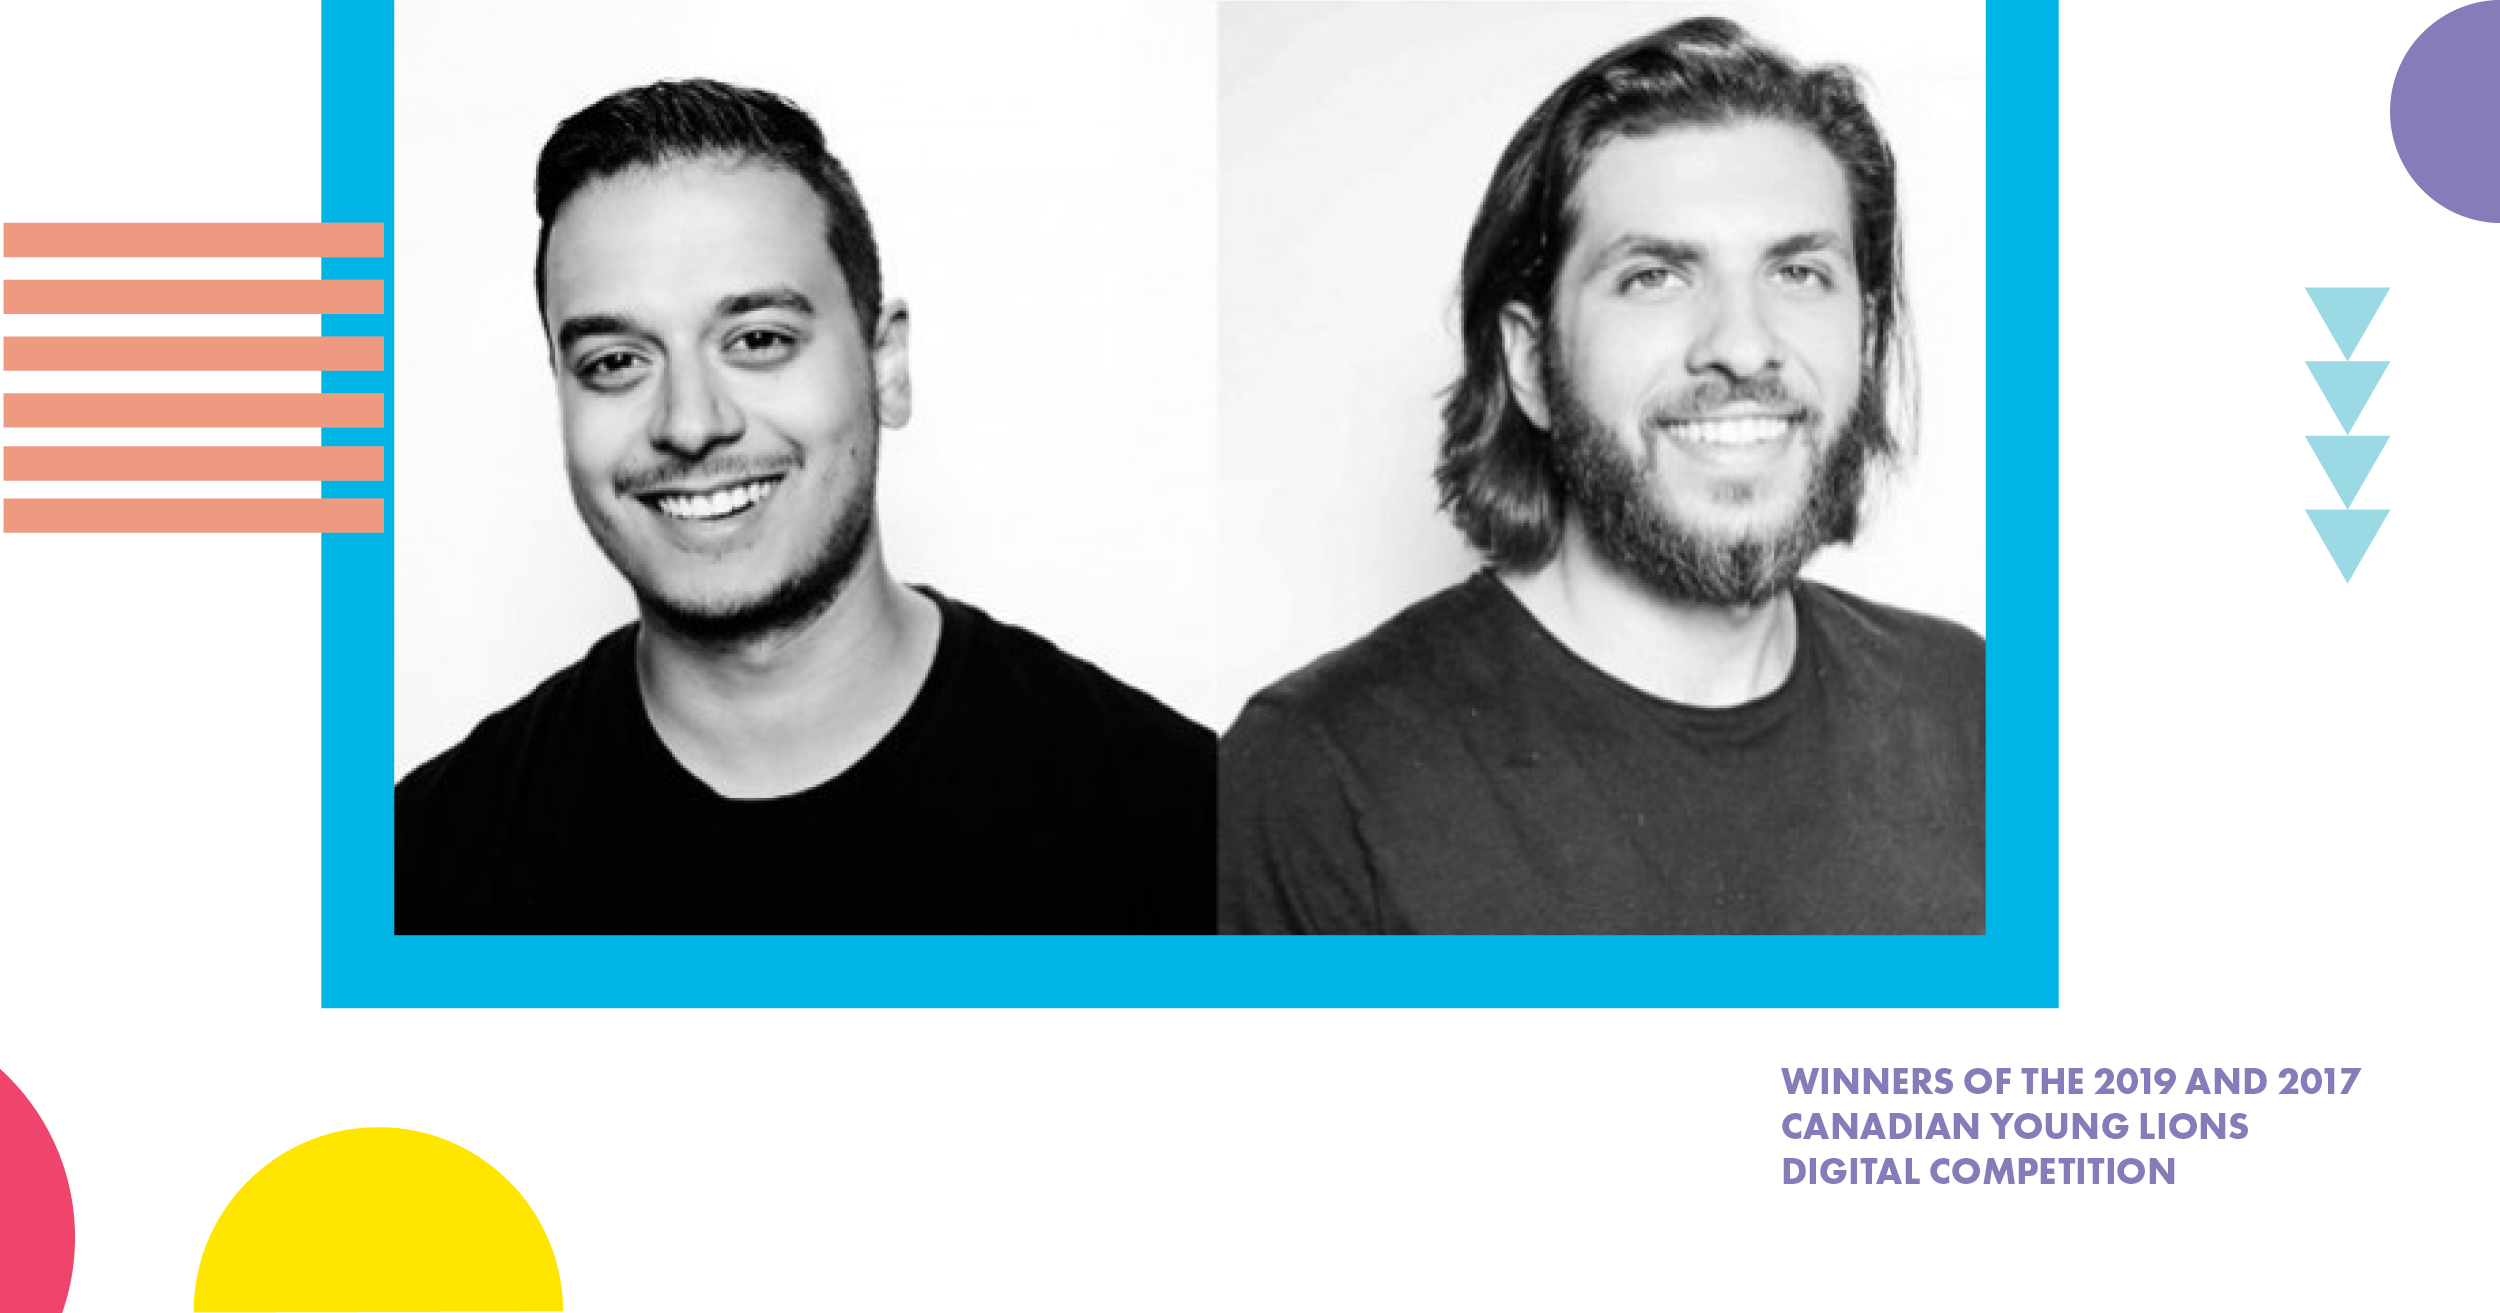 Spotlight on Young Lions: Digital